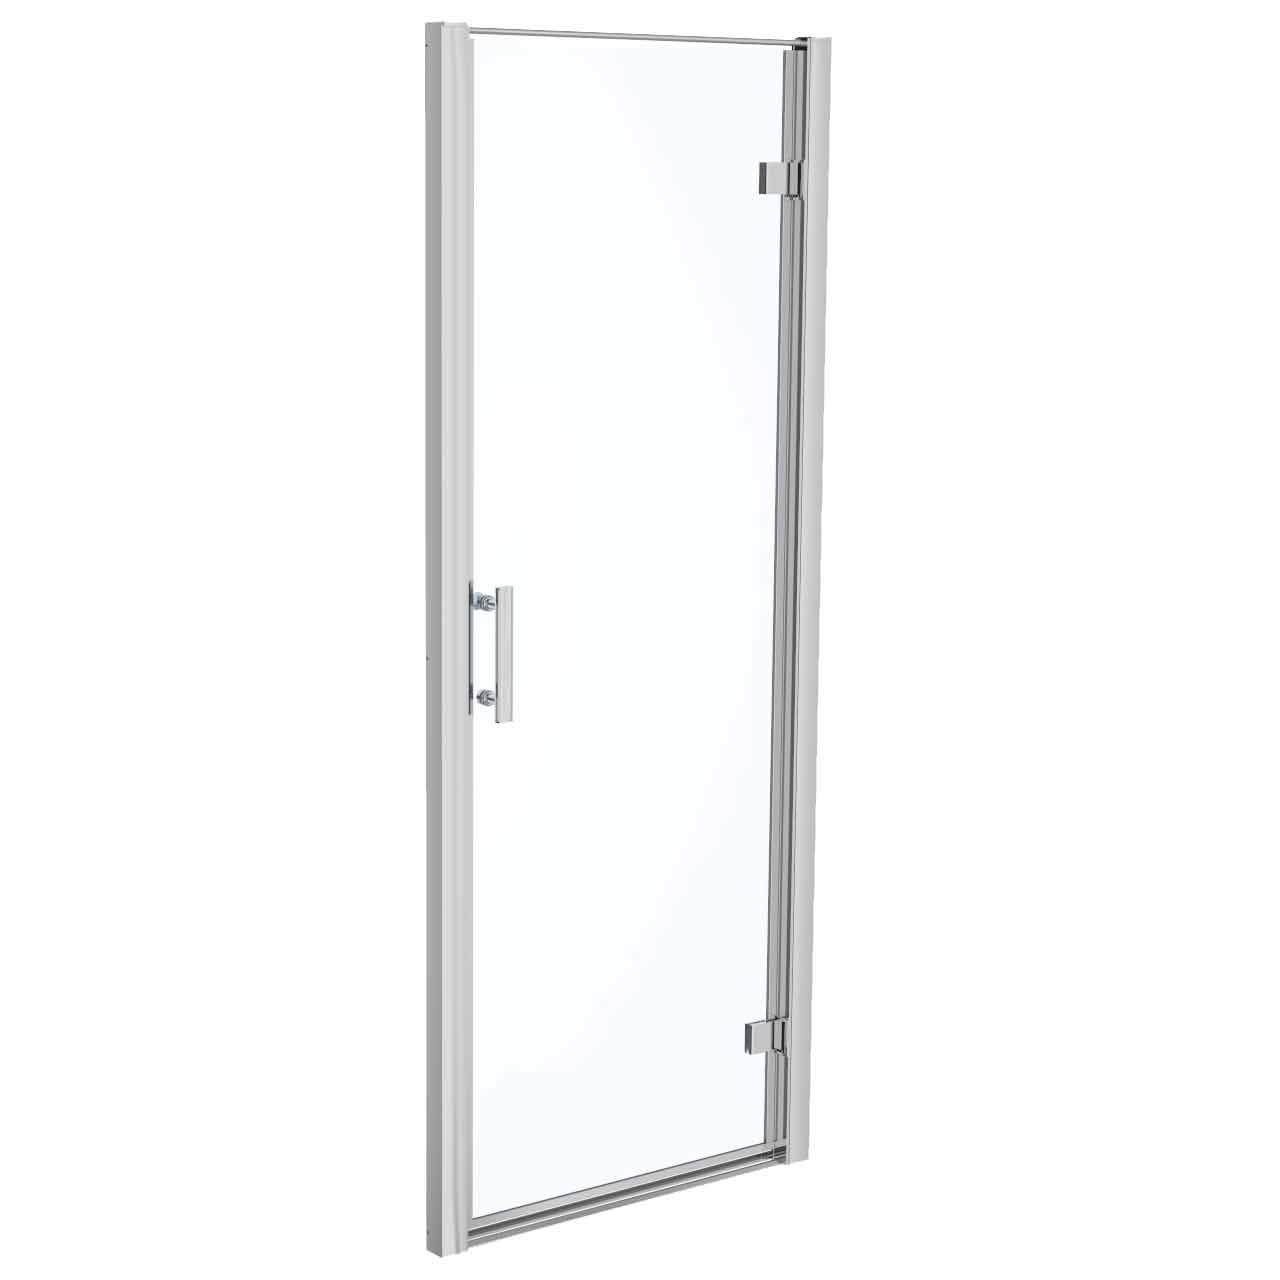 Series 6 760mm x 760mm Hinged Door Shower Enclosure